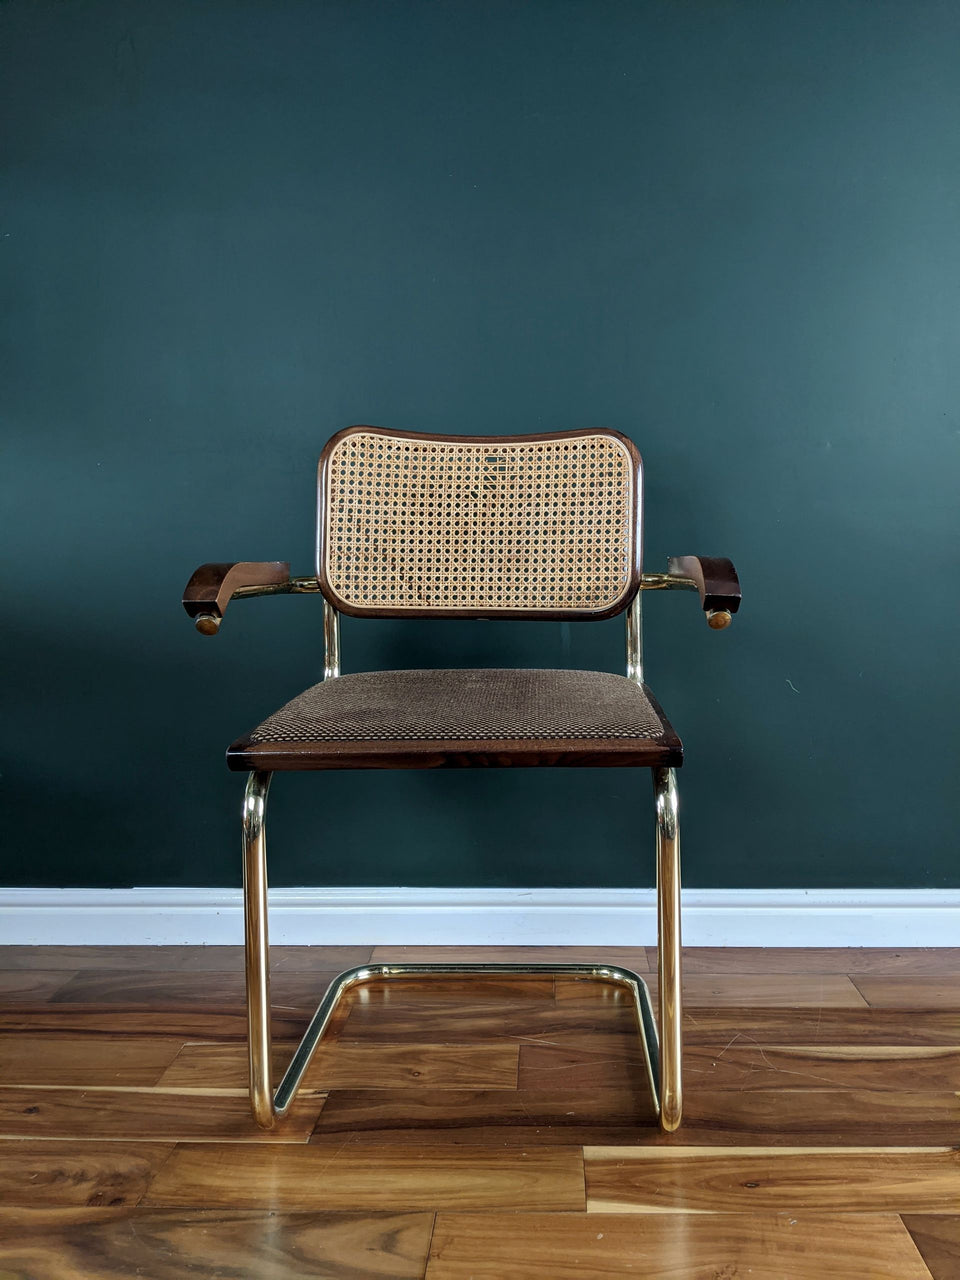 Rare Gold B32 Cesca Chair by Marcel Breuer Made in Italy